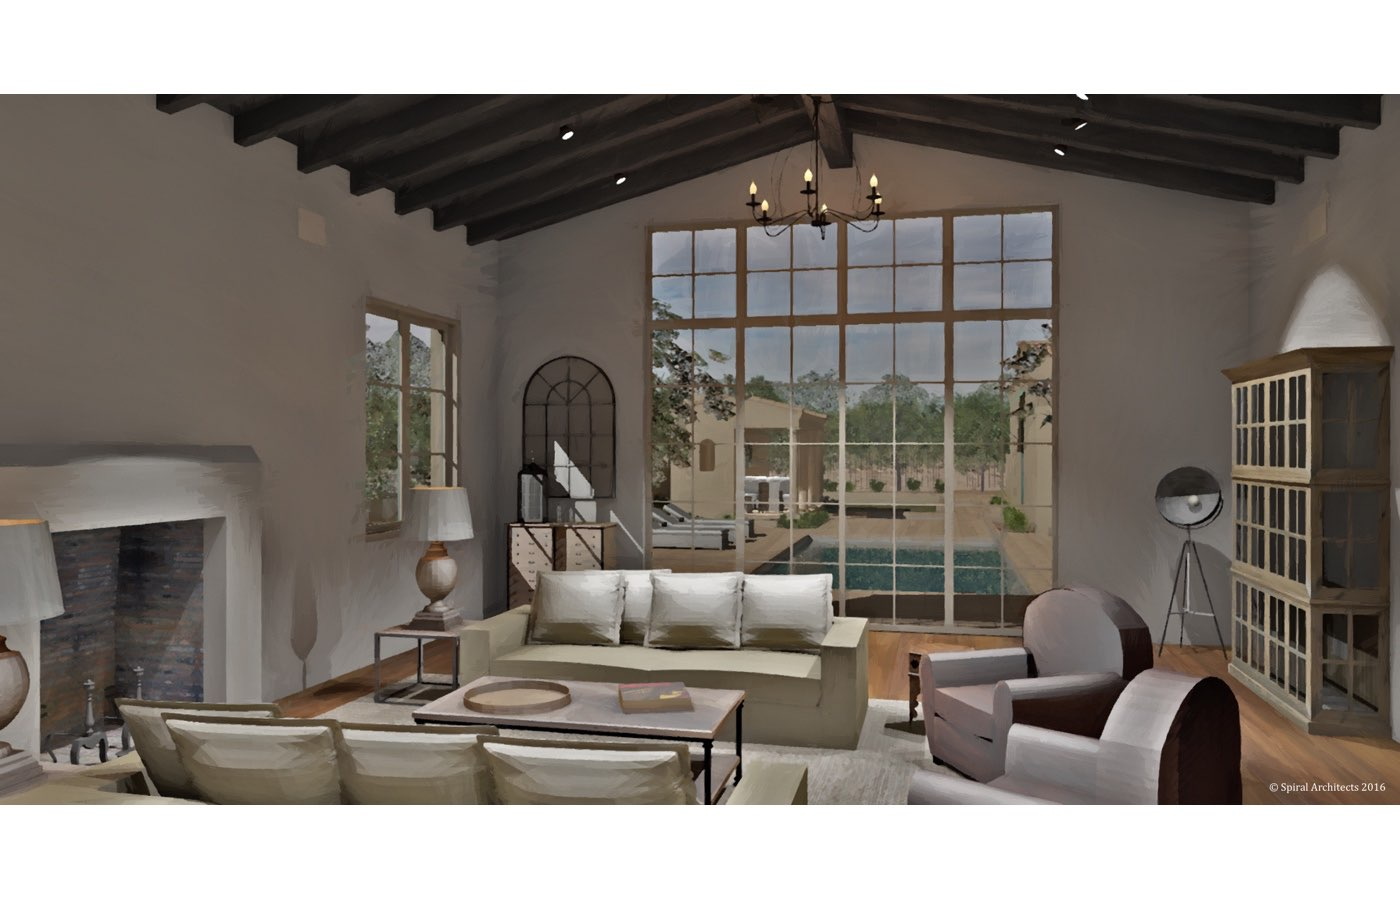 Silverleaf Scottsdale Luxury Custom Residence Spiral Architects Gene Kniaz Living Room Rendering